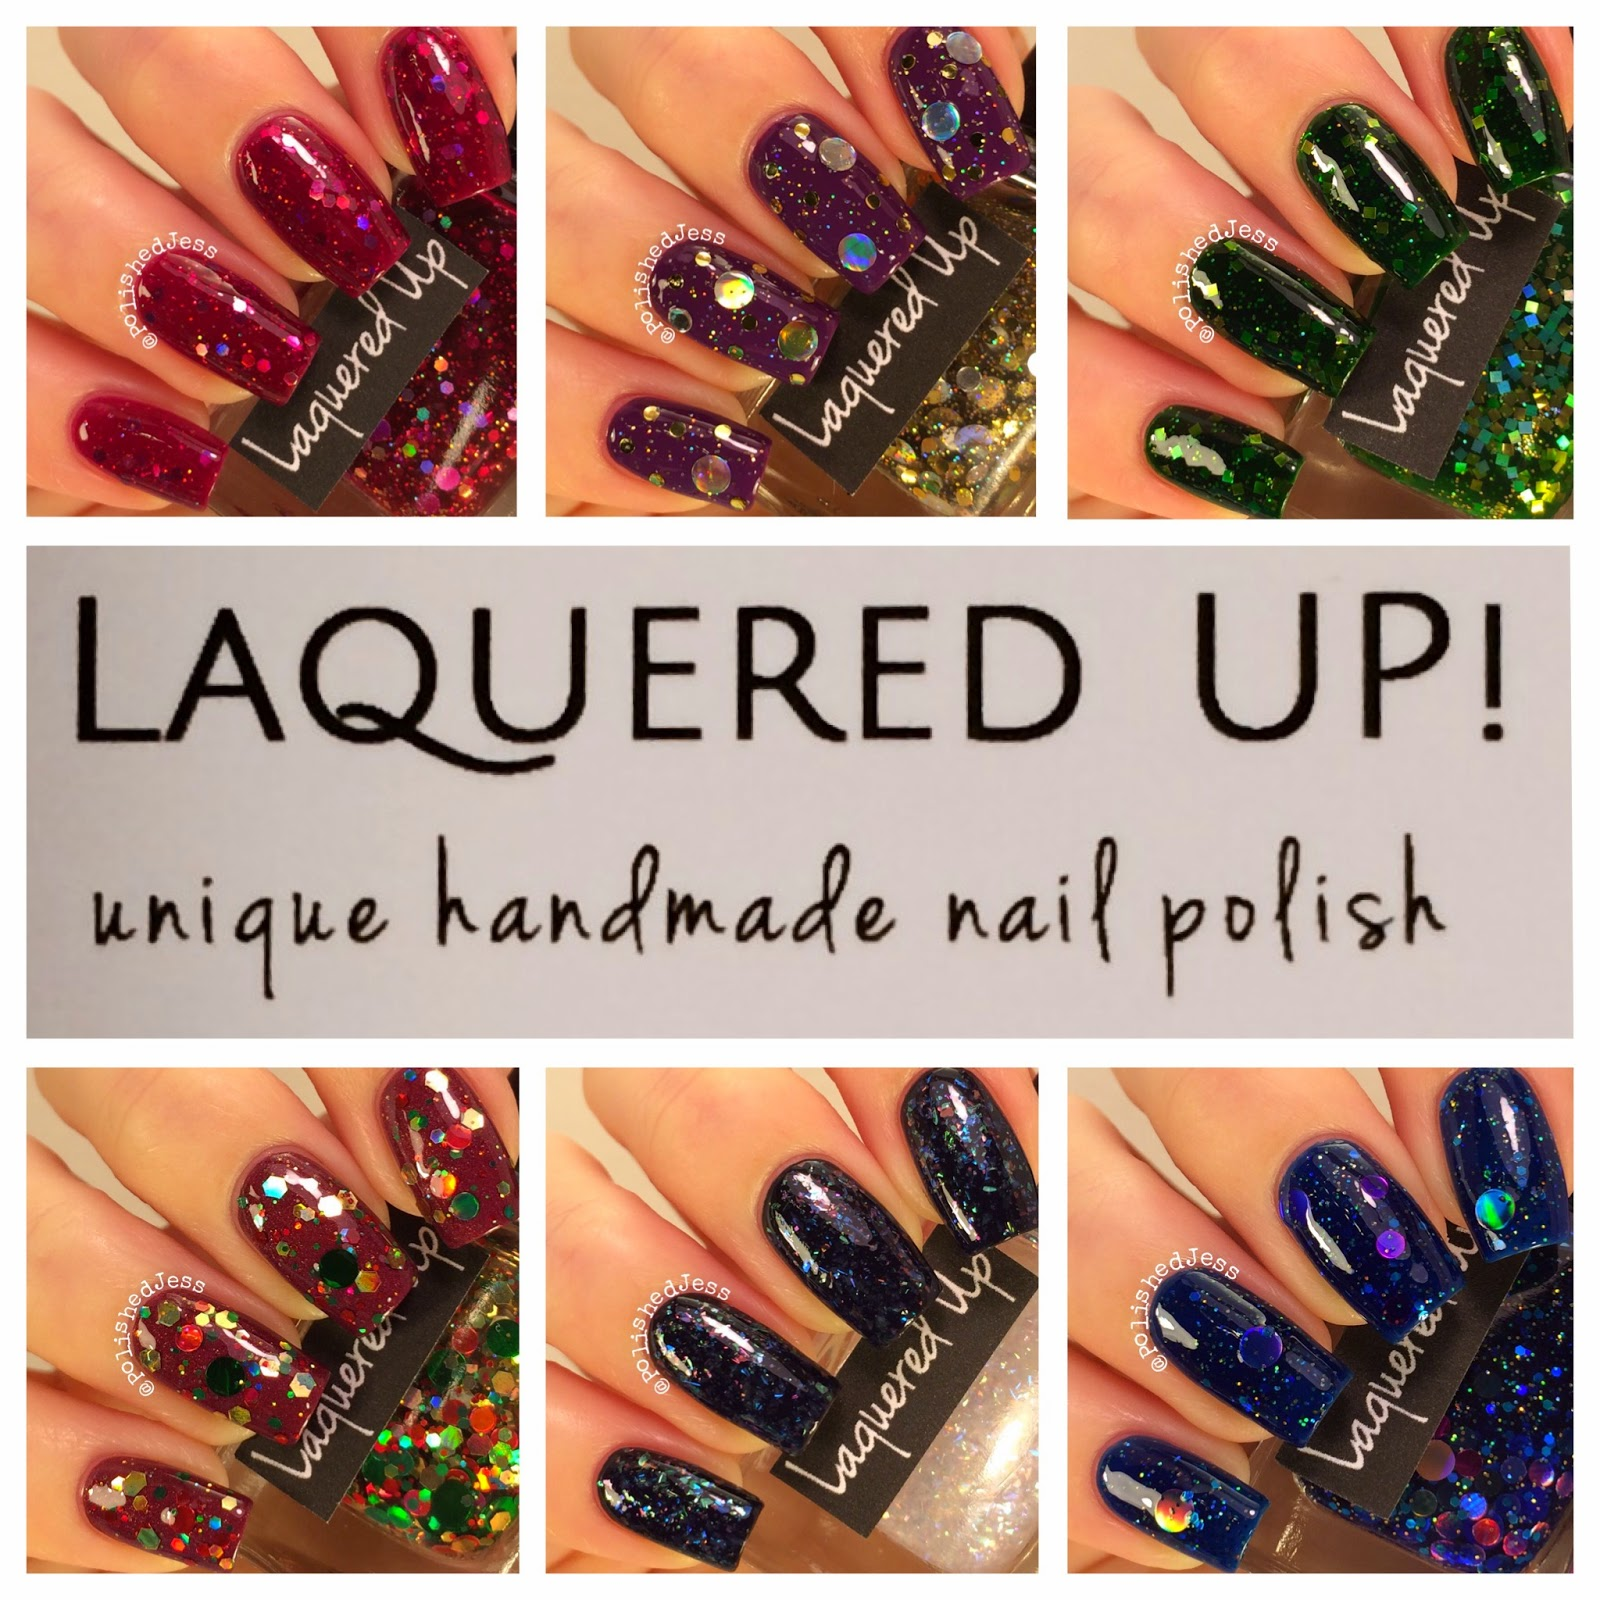 Polished Jess : Lacquered Up! - New Releases